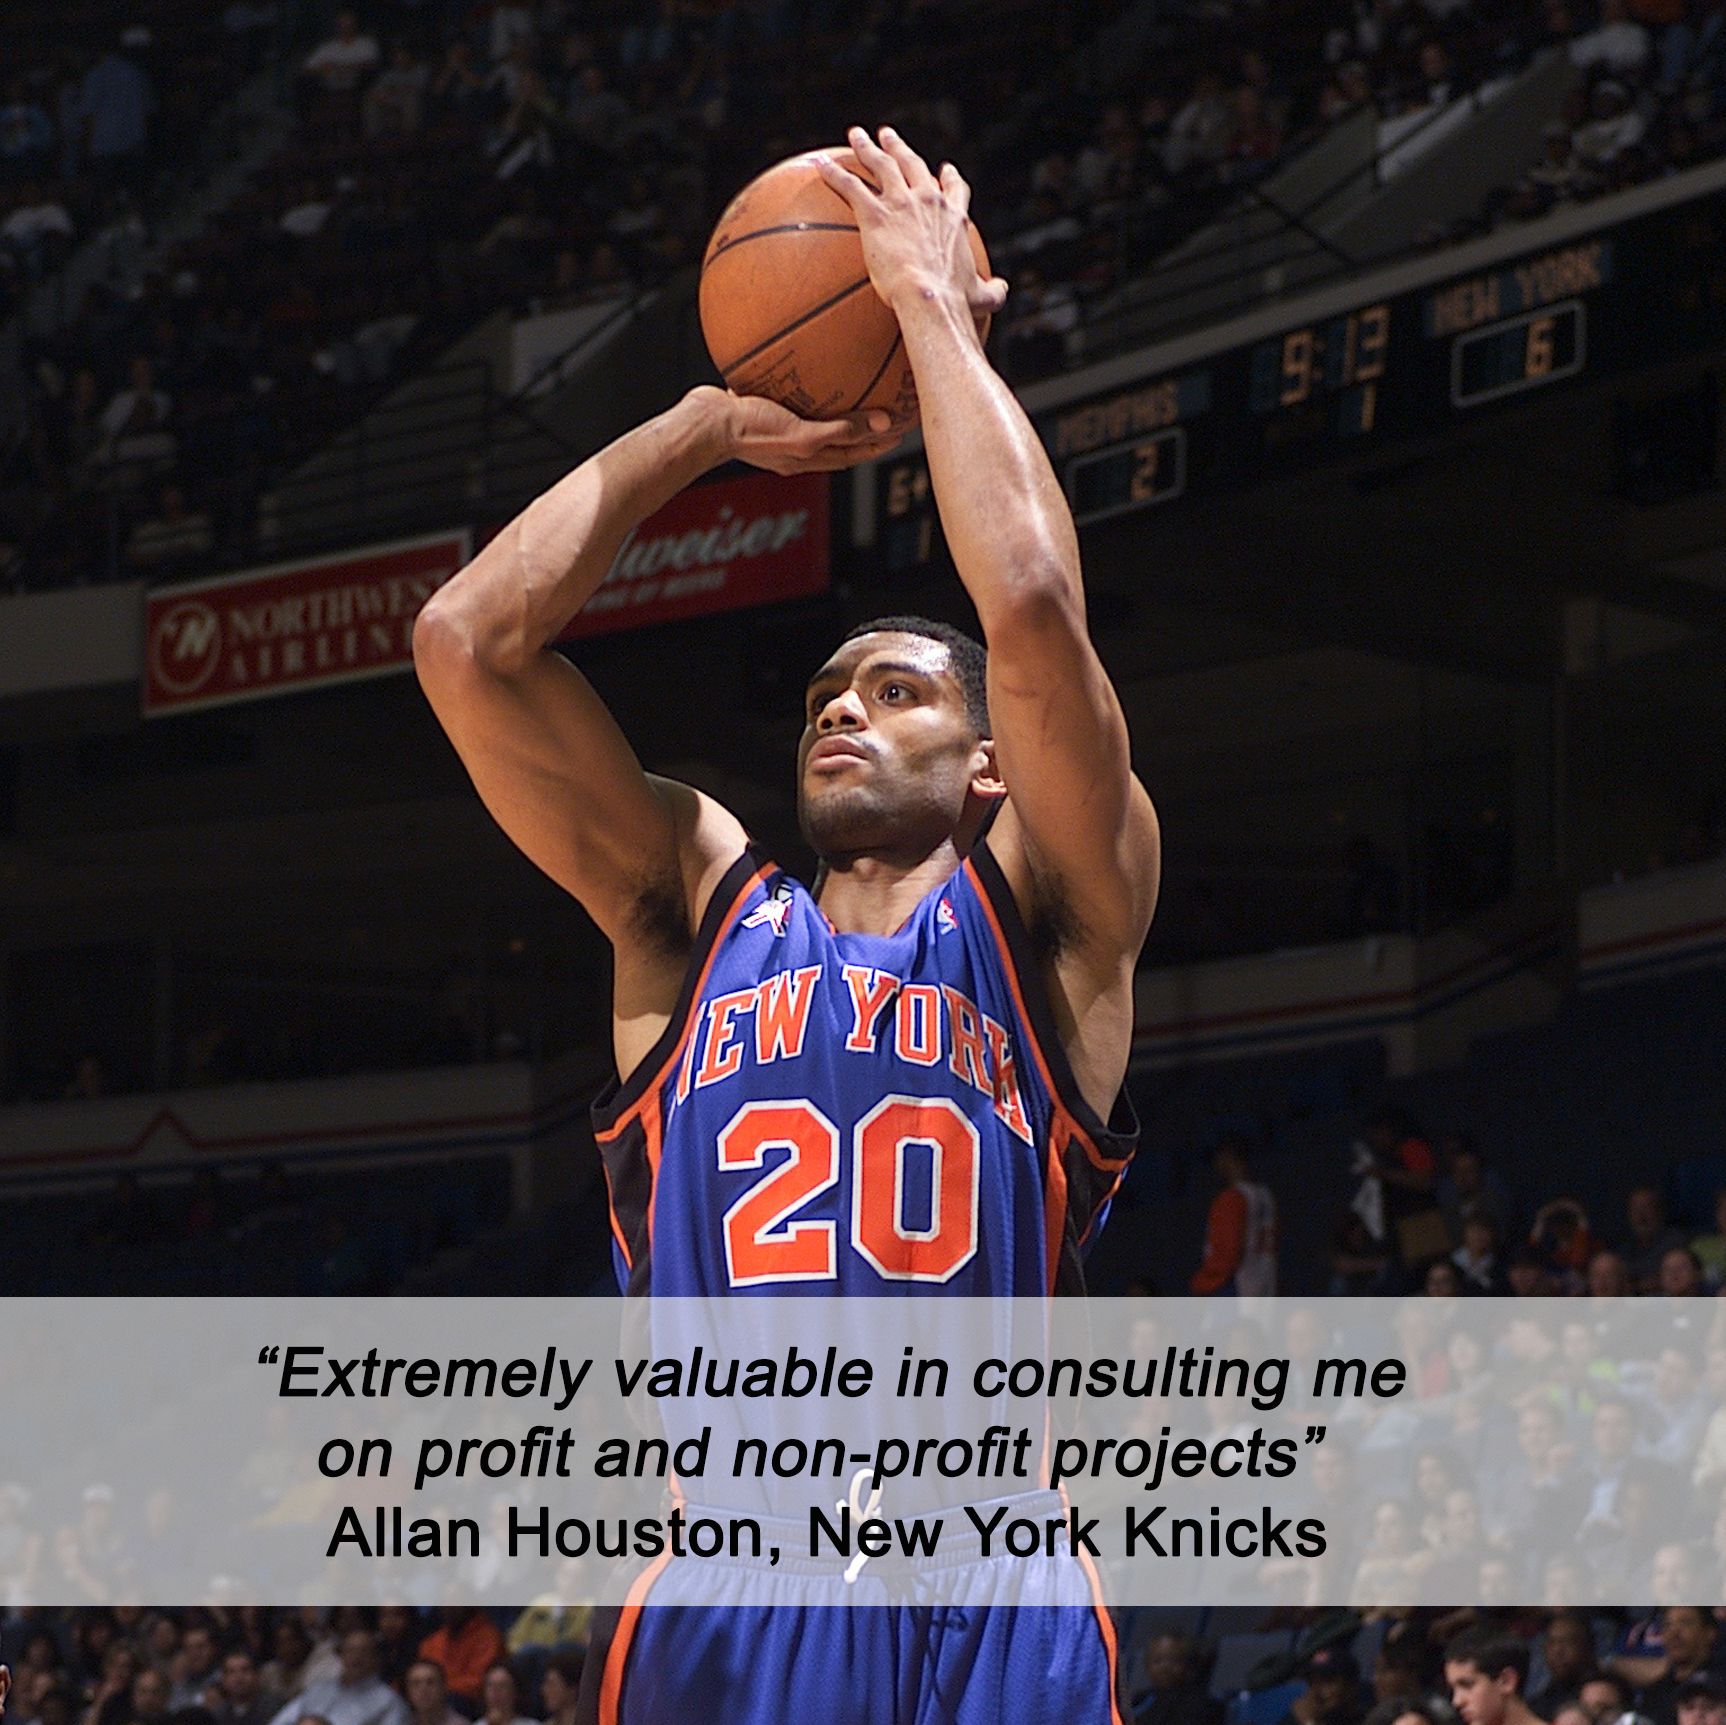 Allan Houston, NBA